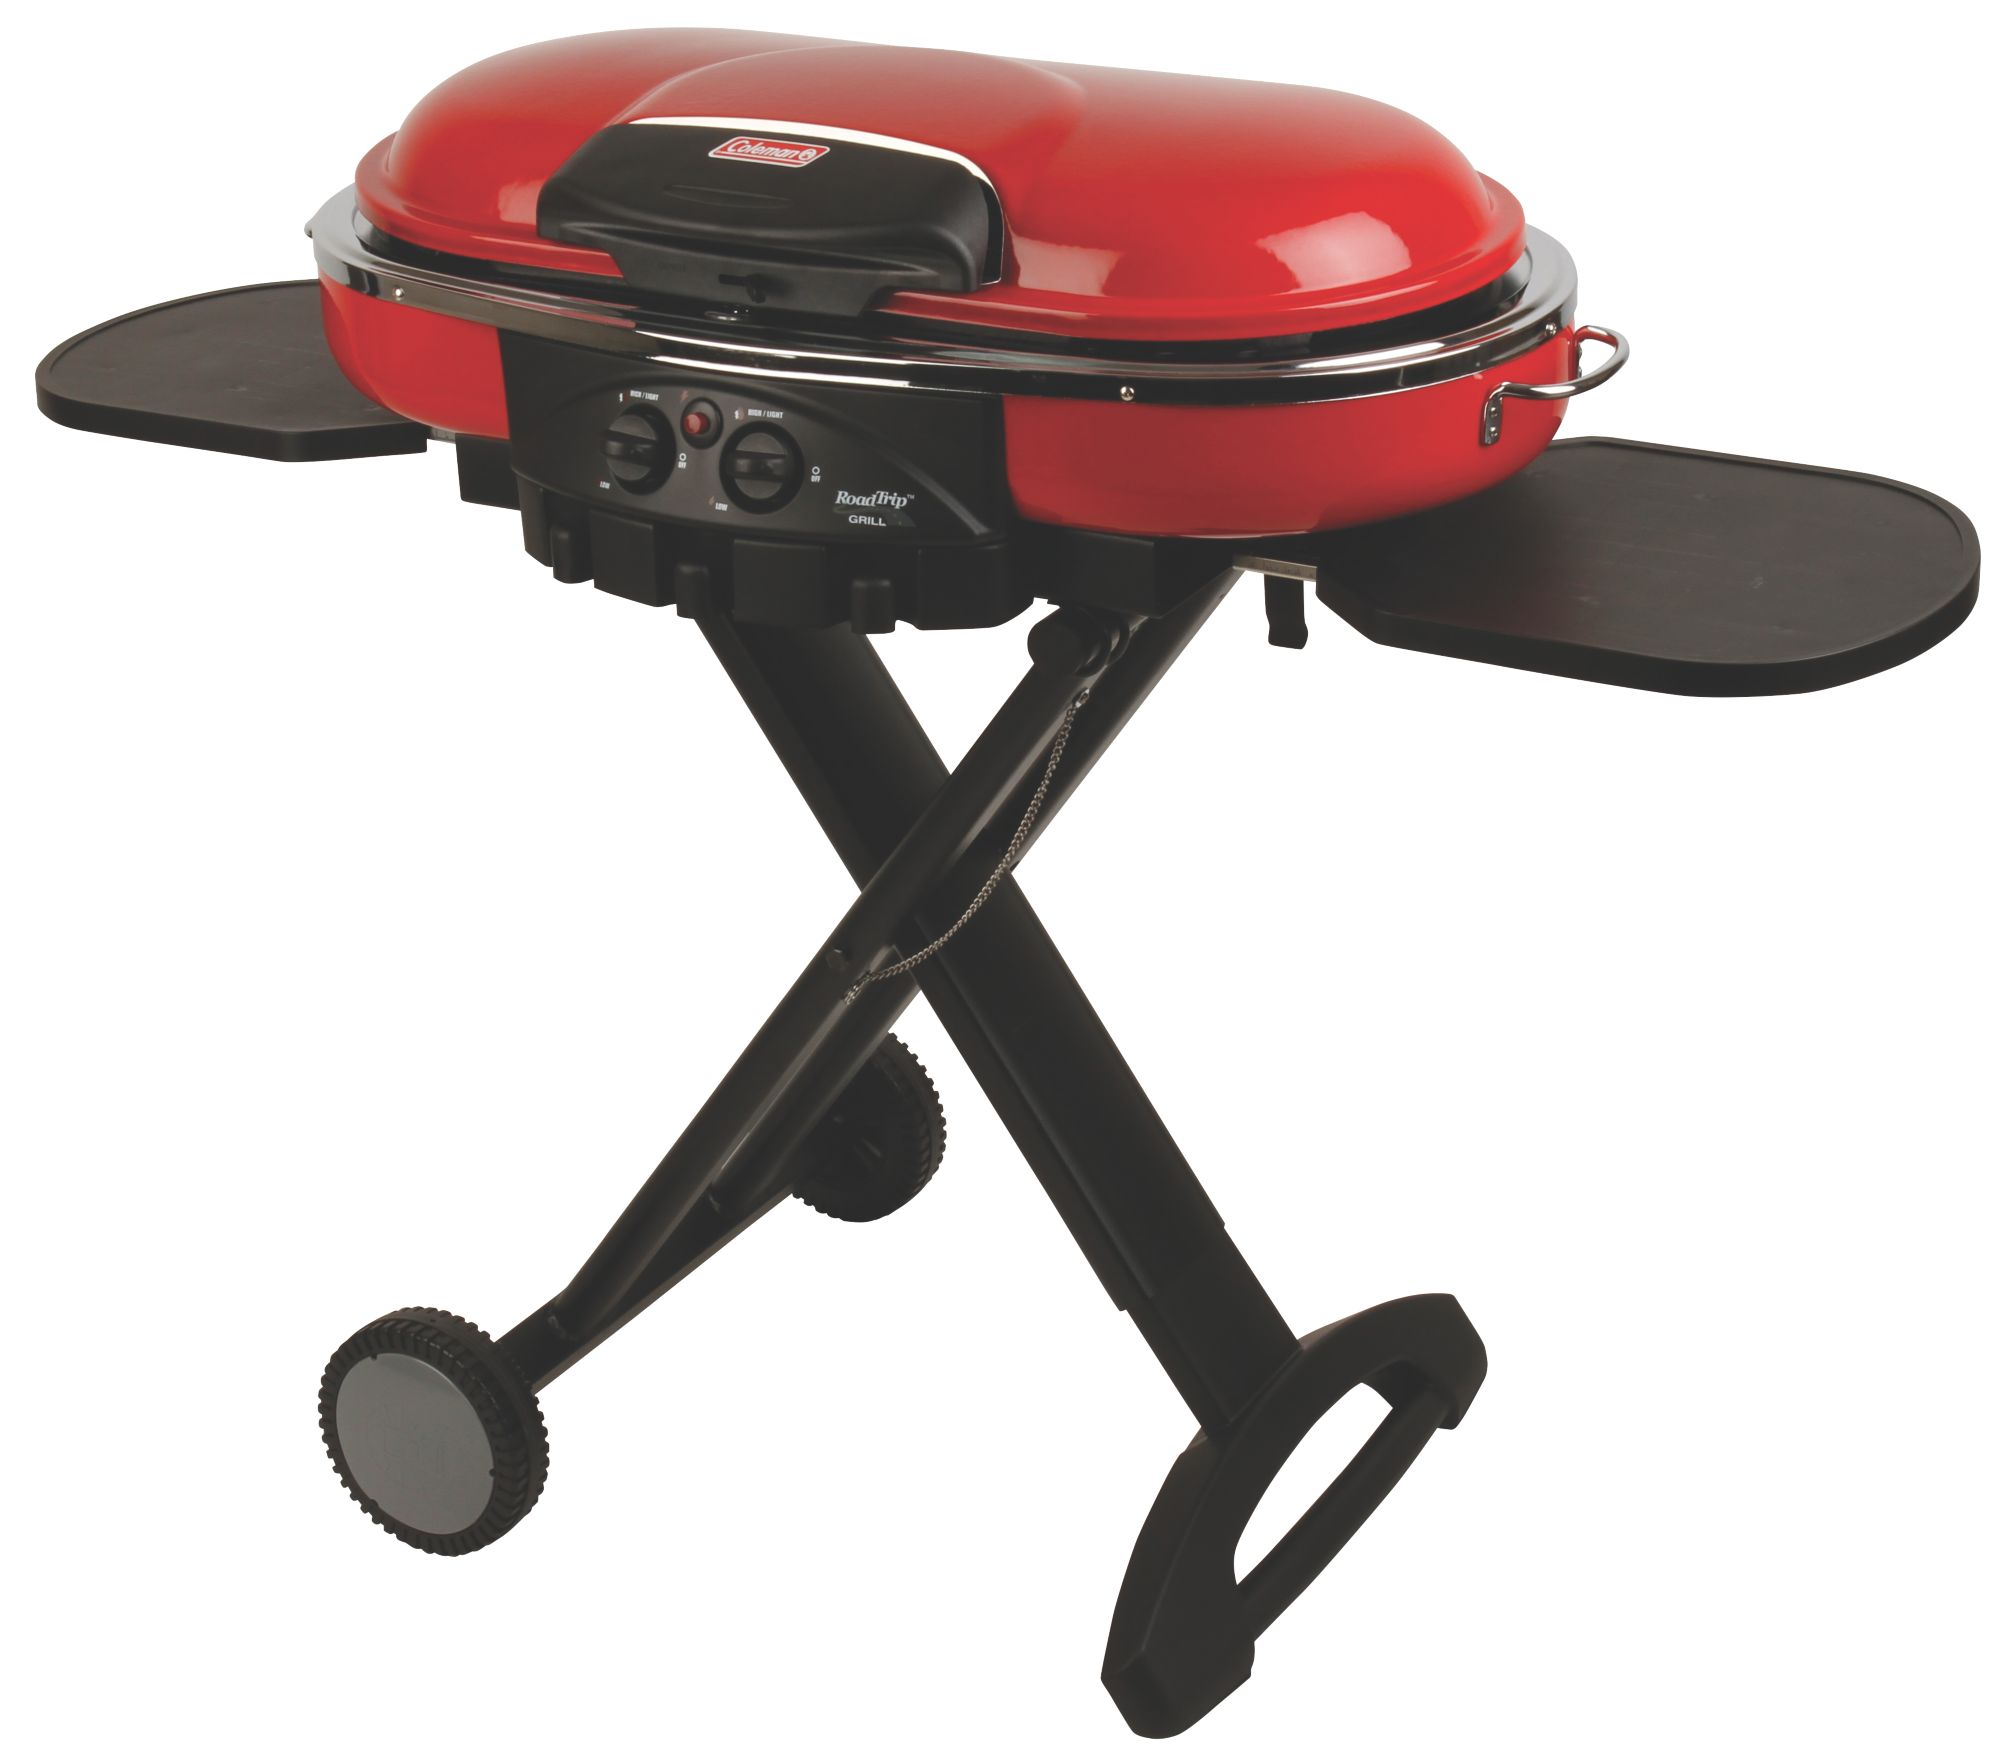 Image result for coleman LXE pROPANE GRILL